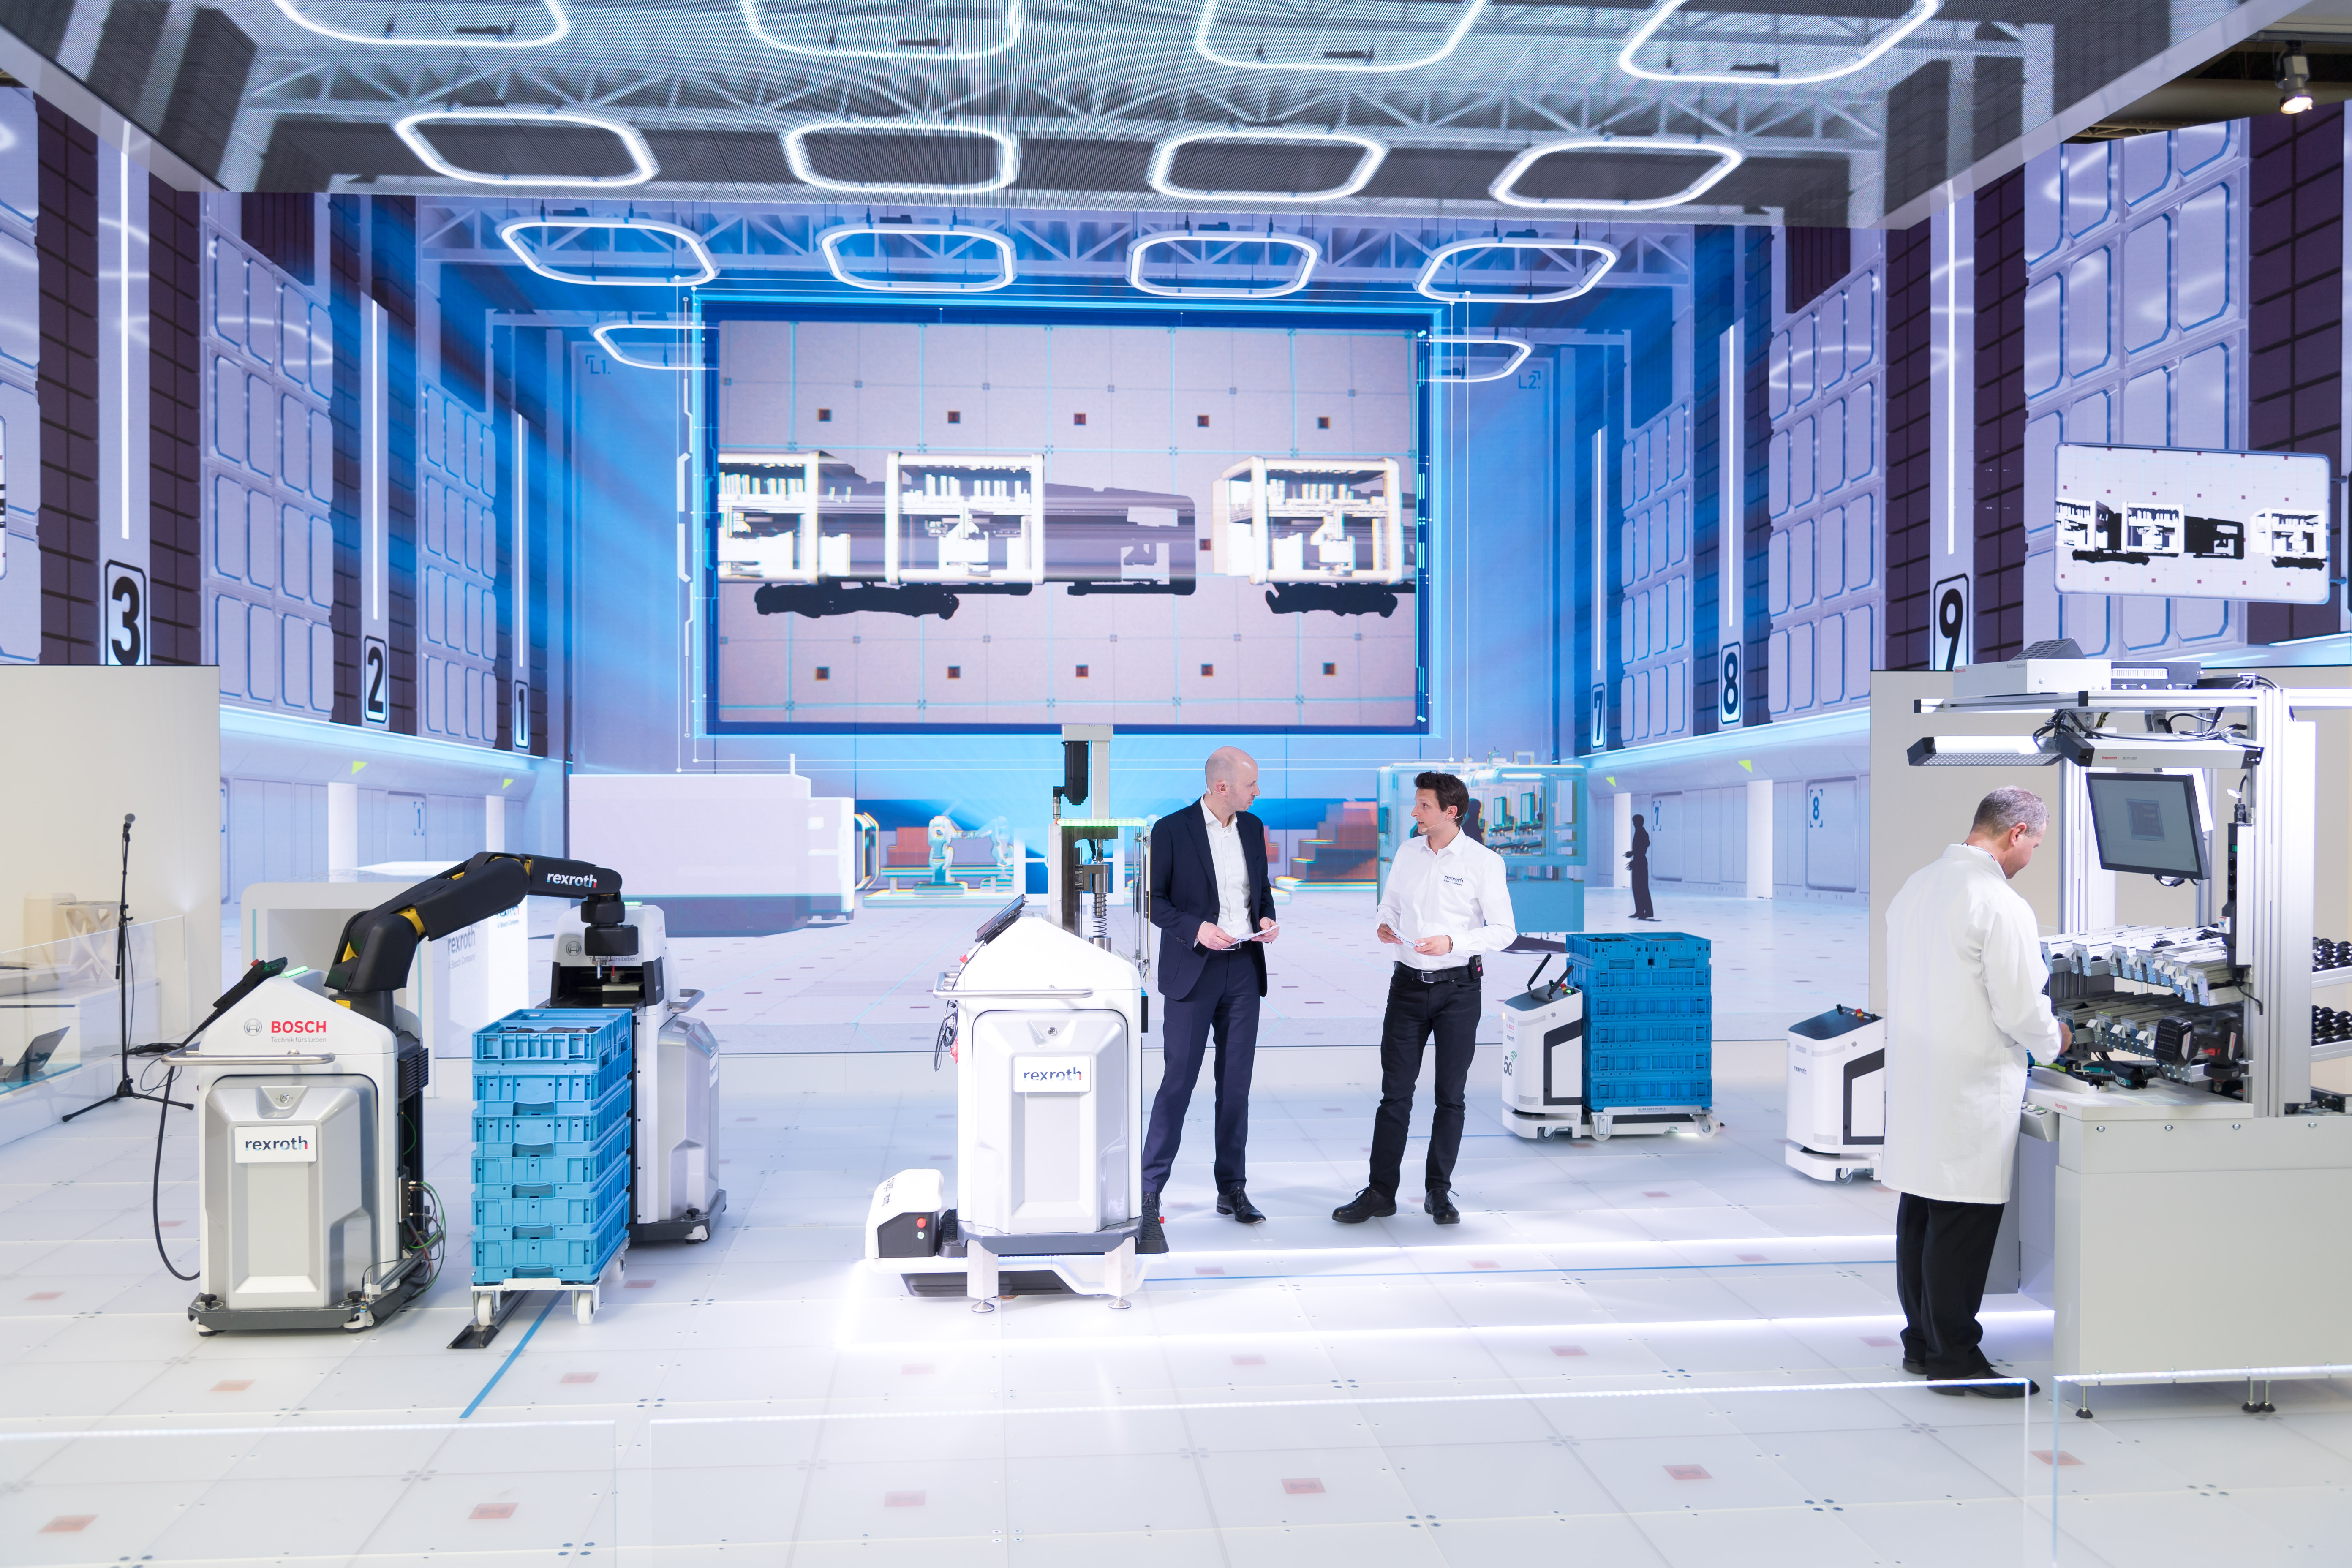 Bosch shows innovative solutions for the factory of the future at the Hannover Messe 2019.